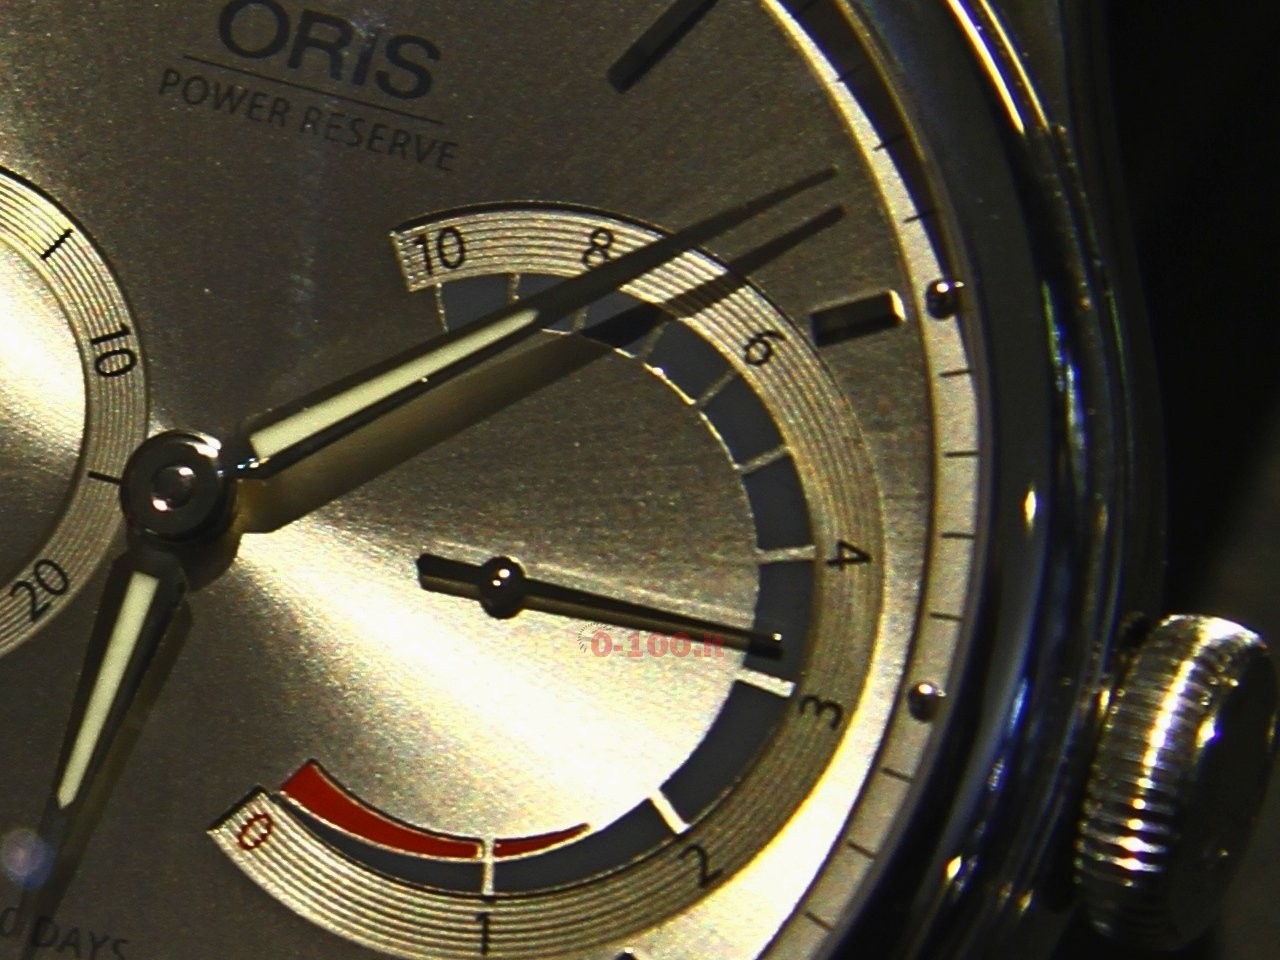 baselworld-2015_oris-calibre-111-0-100-3